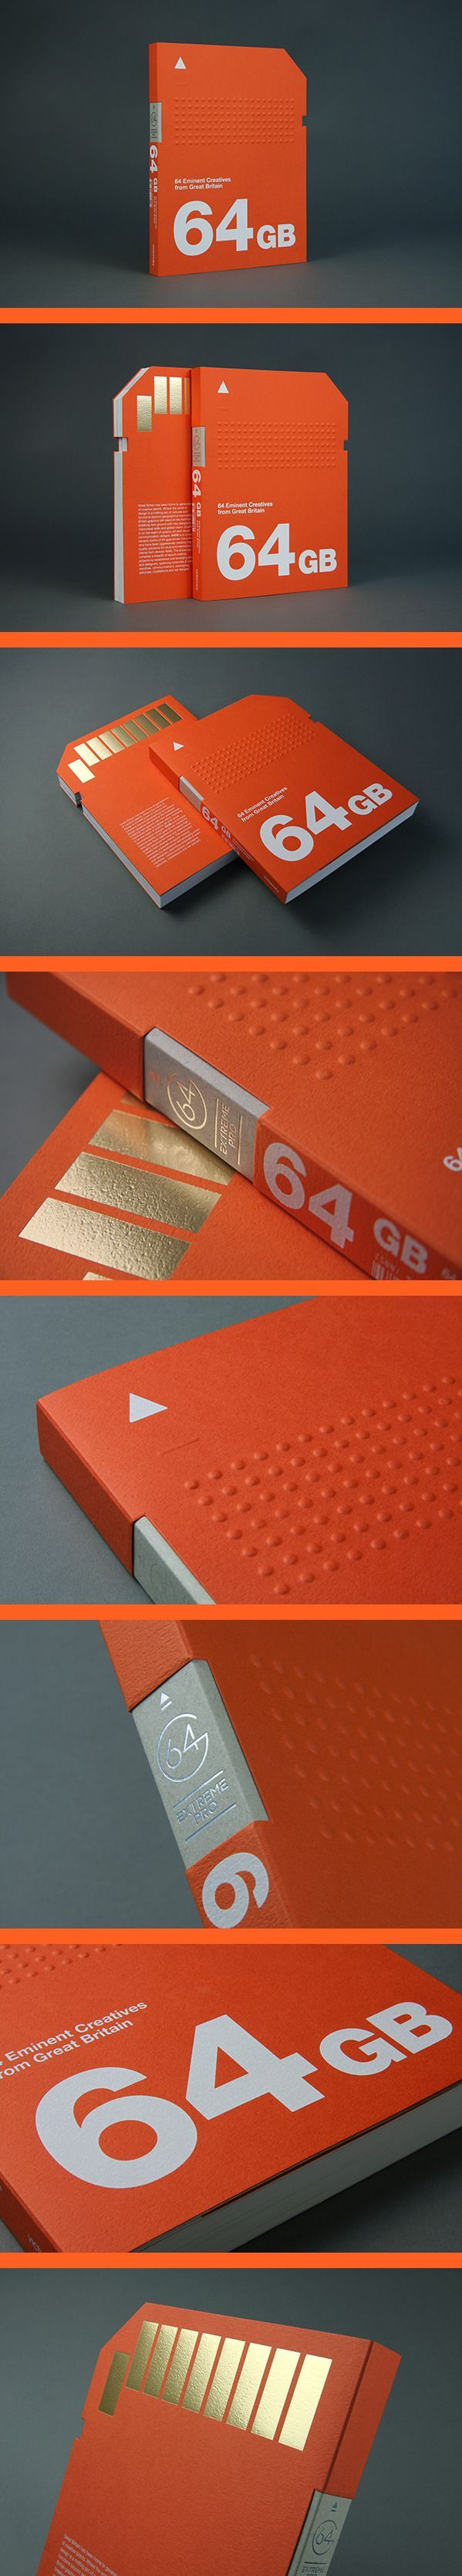 64GB 64 Eminent Creatives from Great Britain | love the vibrant orange, bold font and the use of the die-cut.